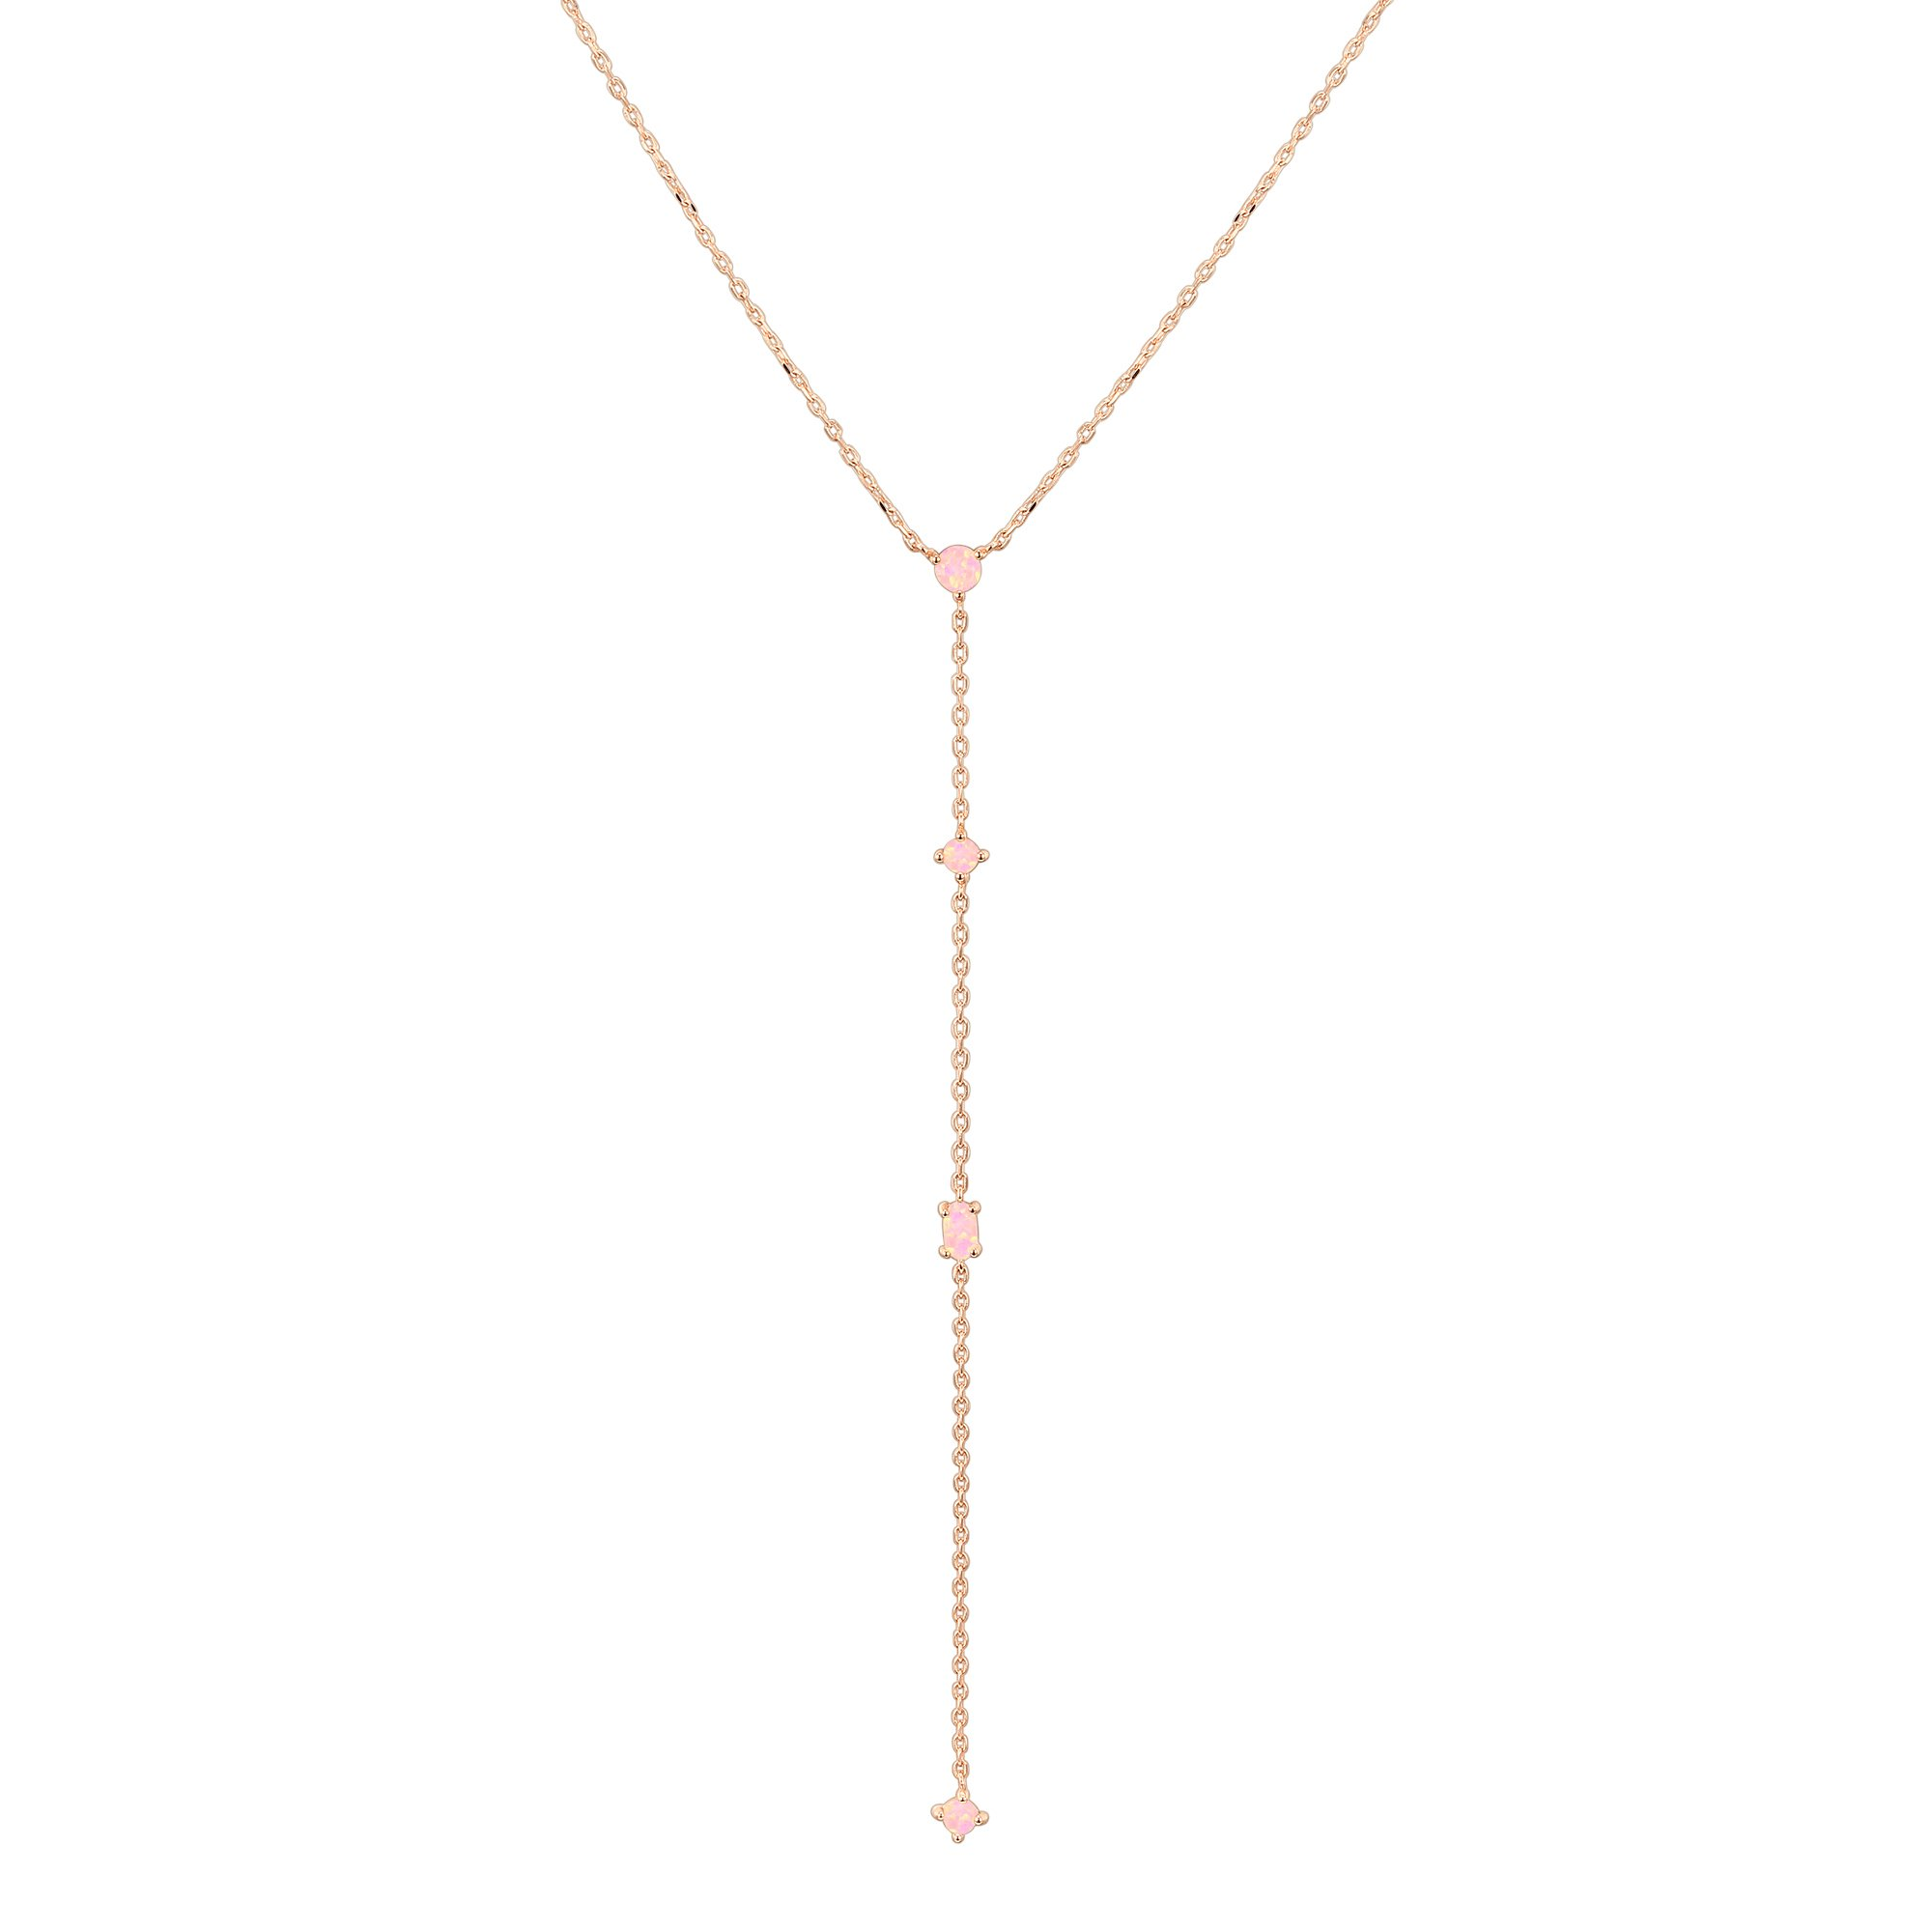 PAVOI 14K Rose Gold Plated Lariat Necklace Pendant with Created Pink Opal Necklace for Women